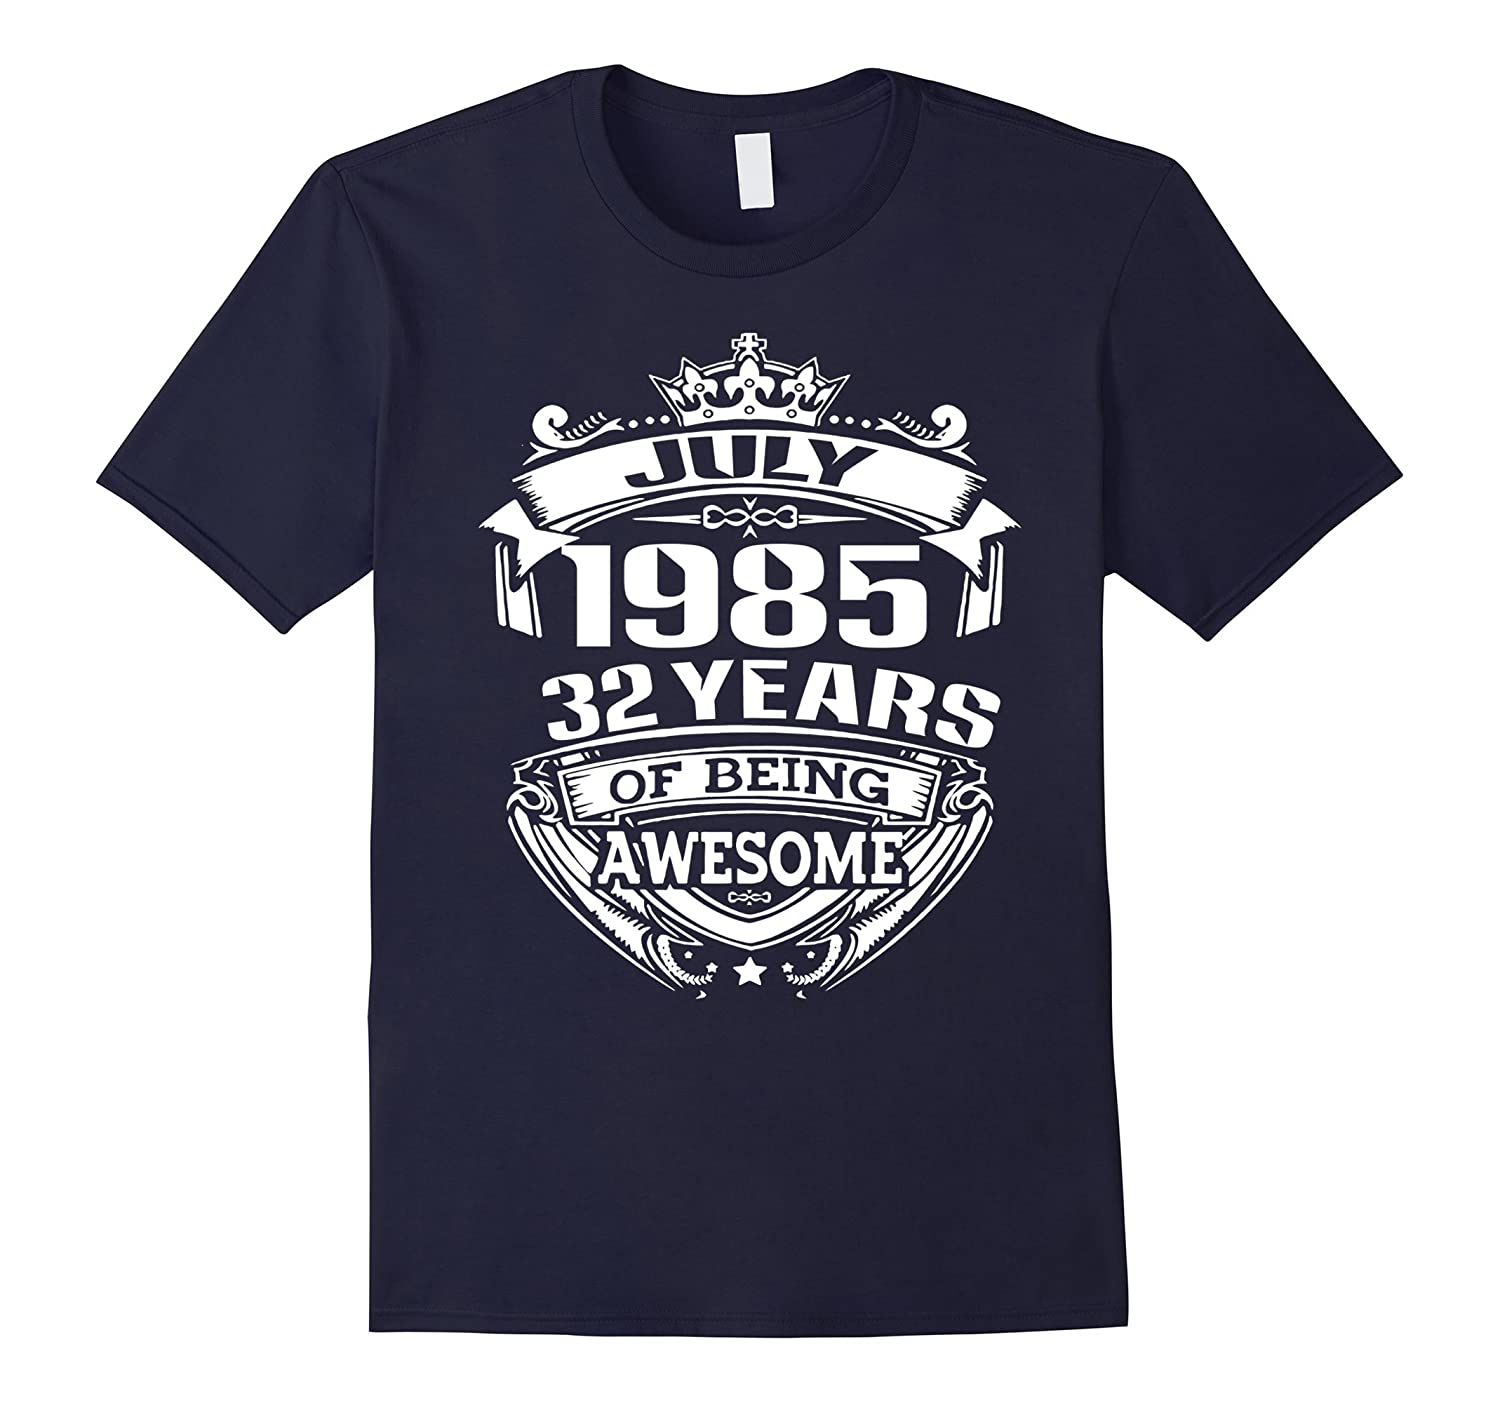 July 1985 32 years of being awesome Tshirt-CD